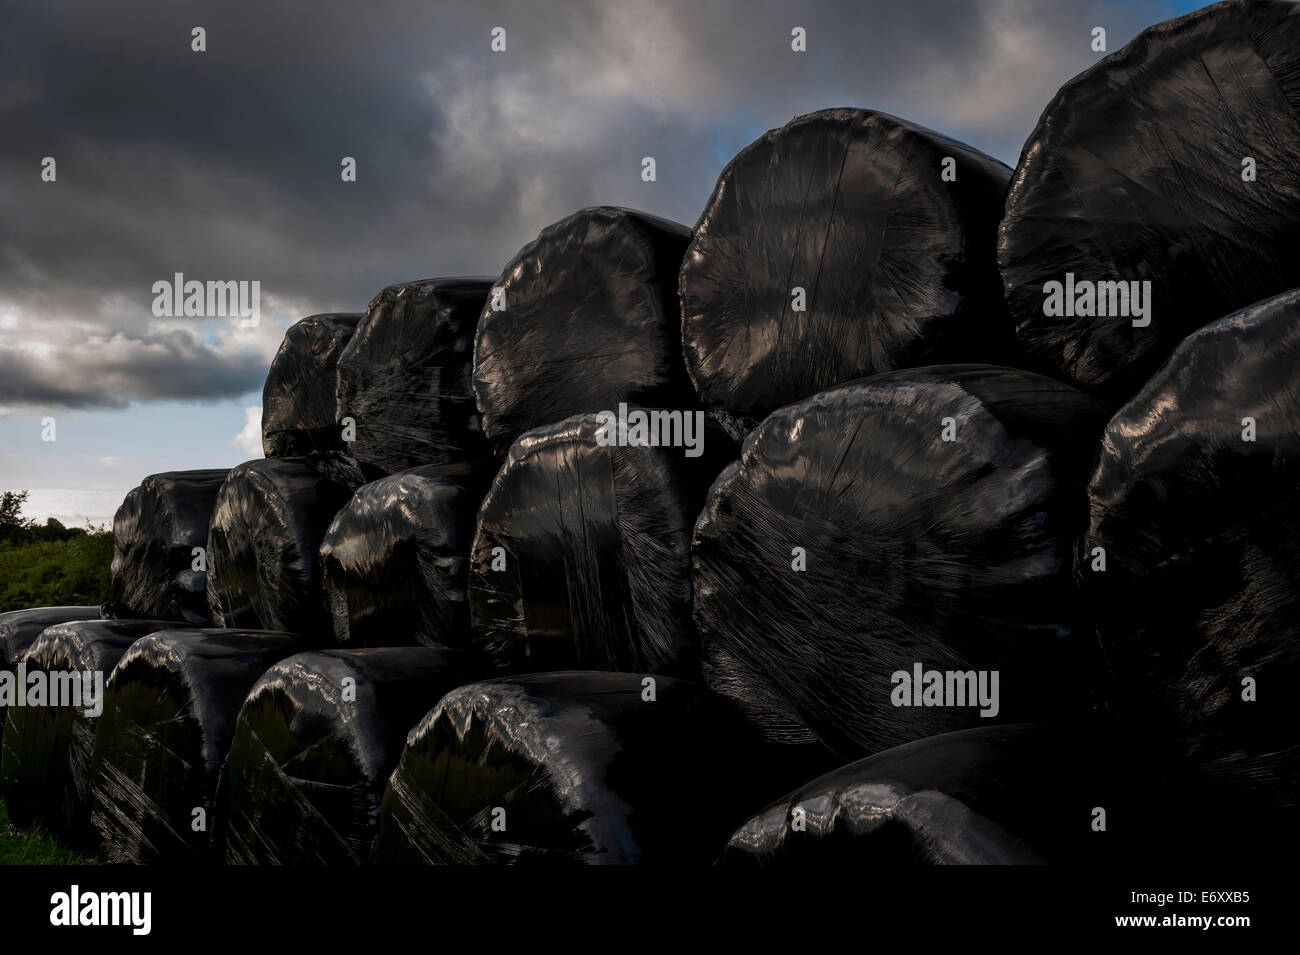 Shiny black plastic wrapped hay bails against a stormy sky - Stock Image